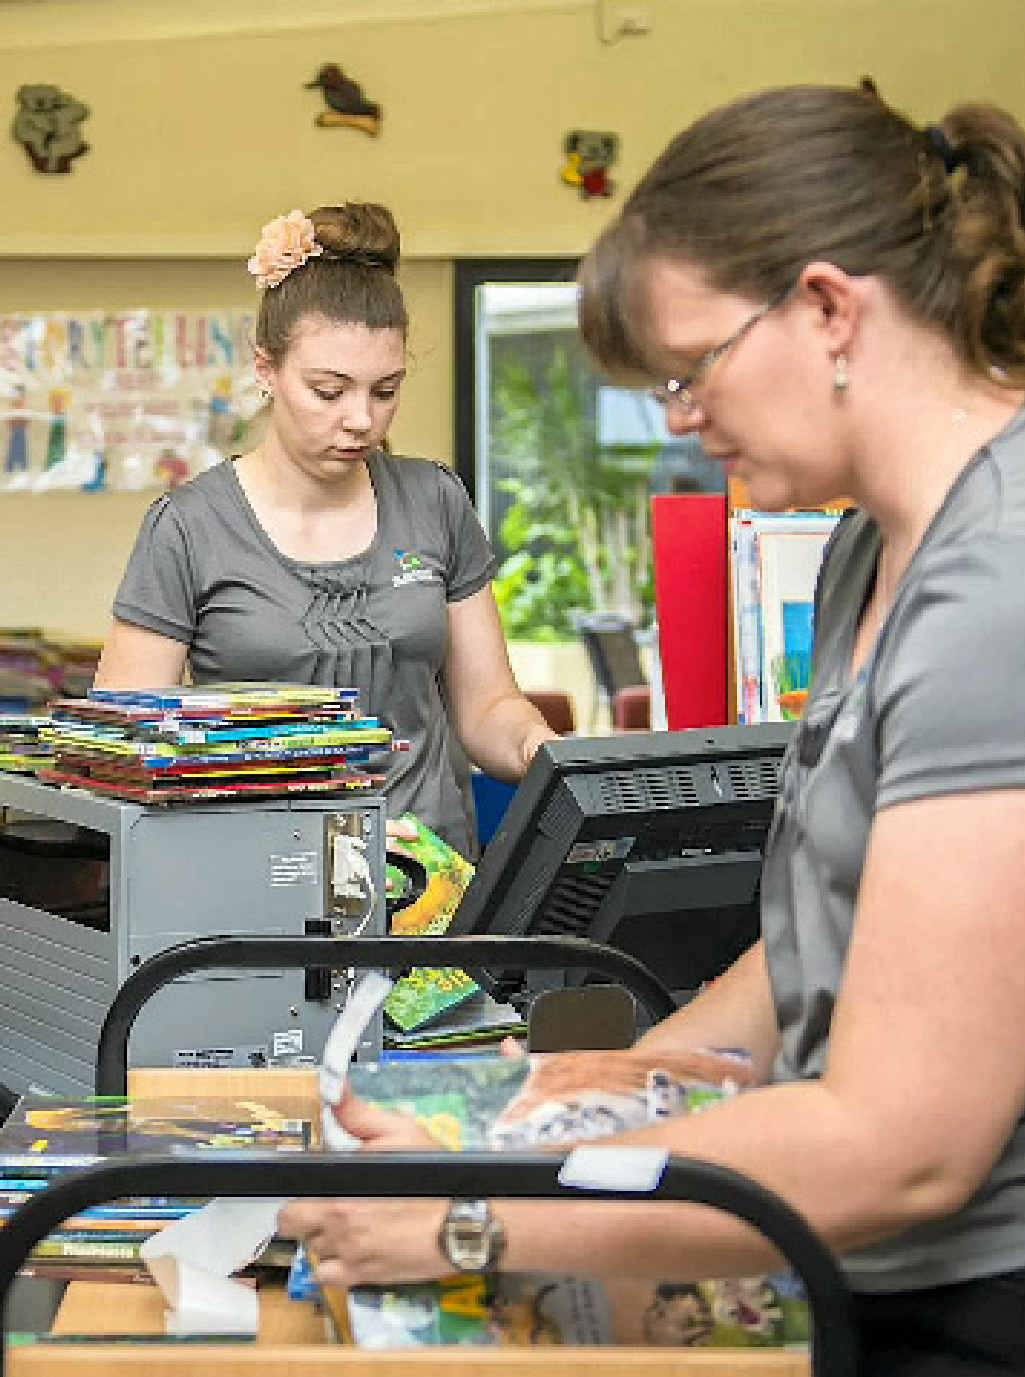 BOOK WORMS: Library assistants Janie Steeo and Natalie Hinde tag books to get ready for the self-service book borrowing.